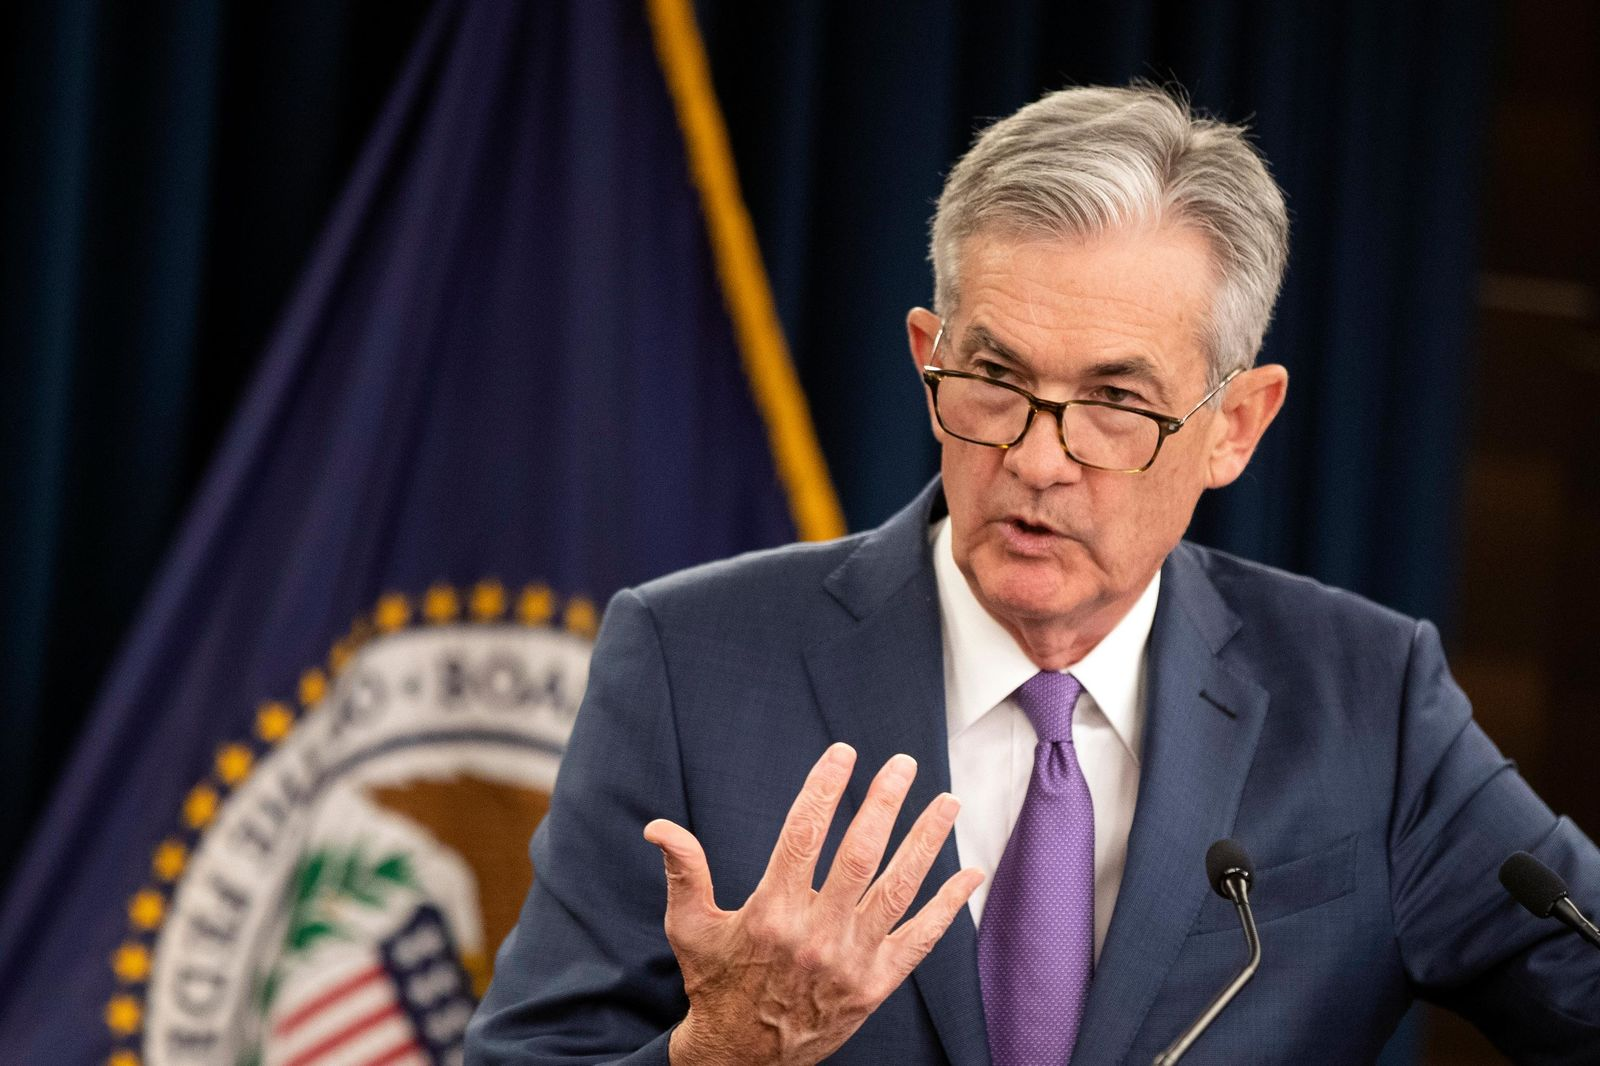 FILE - In this July 31, 2019, file photo Federal Reserve Chairman Jerome Powell speaks during a news conference following a two-day Federal Open Market Committee meeting in Washington. (AP Photo/Manuel Balce Ceneta, File)